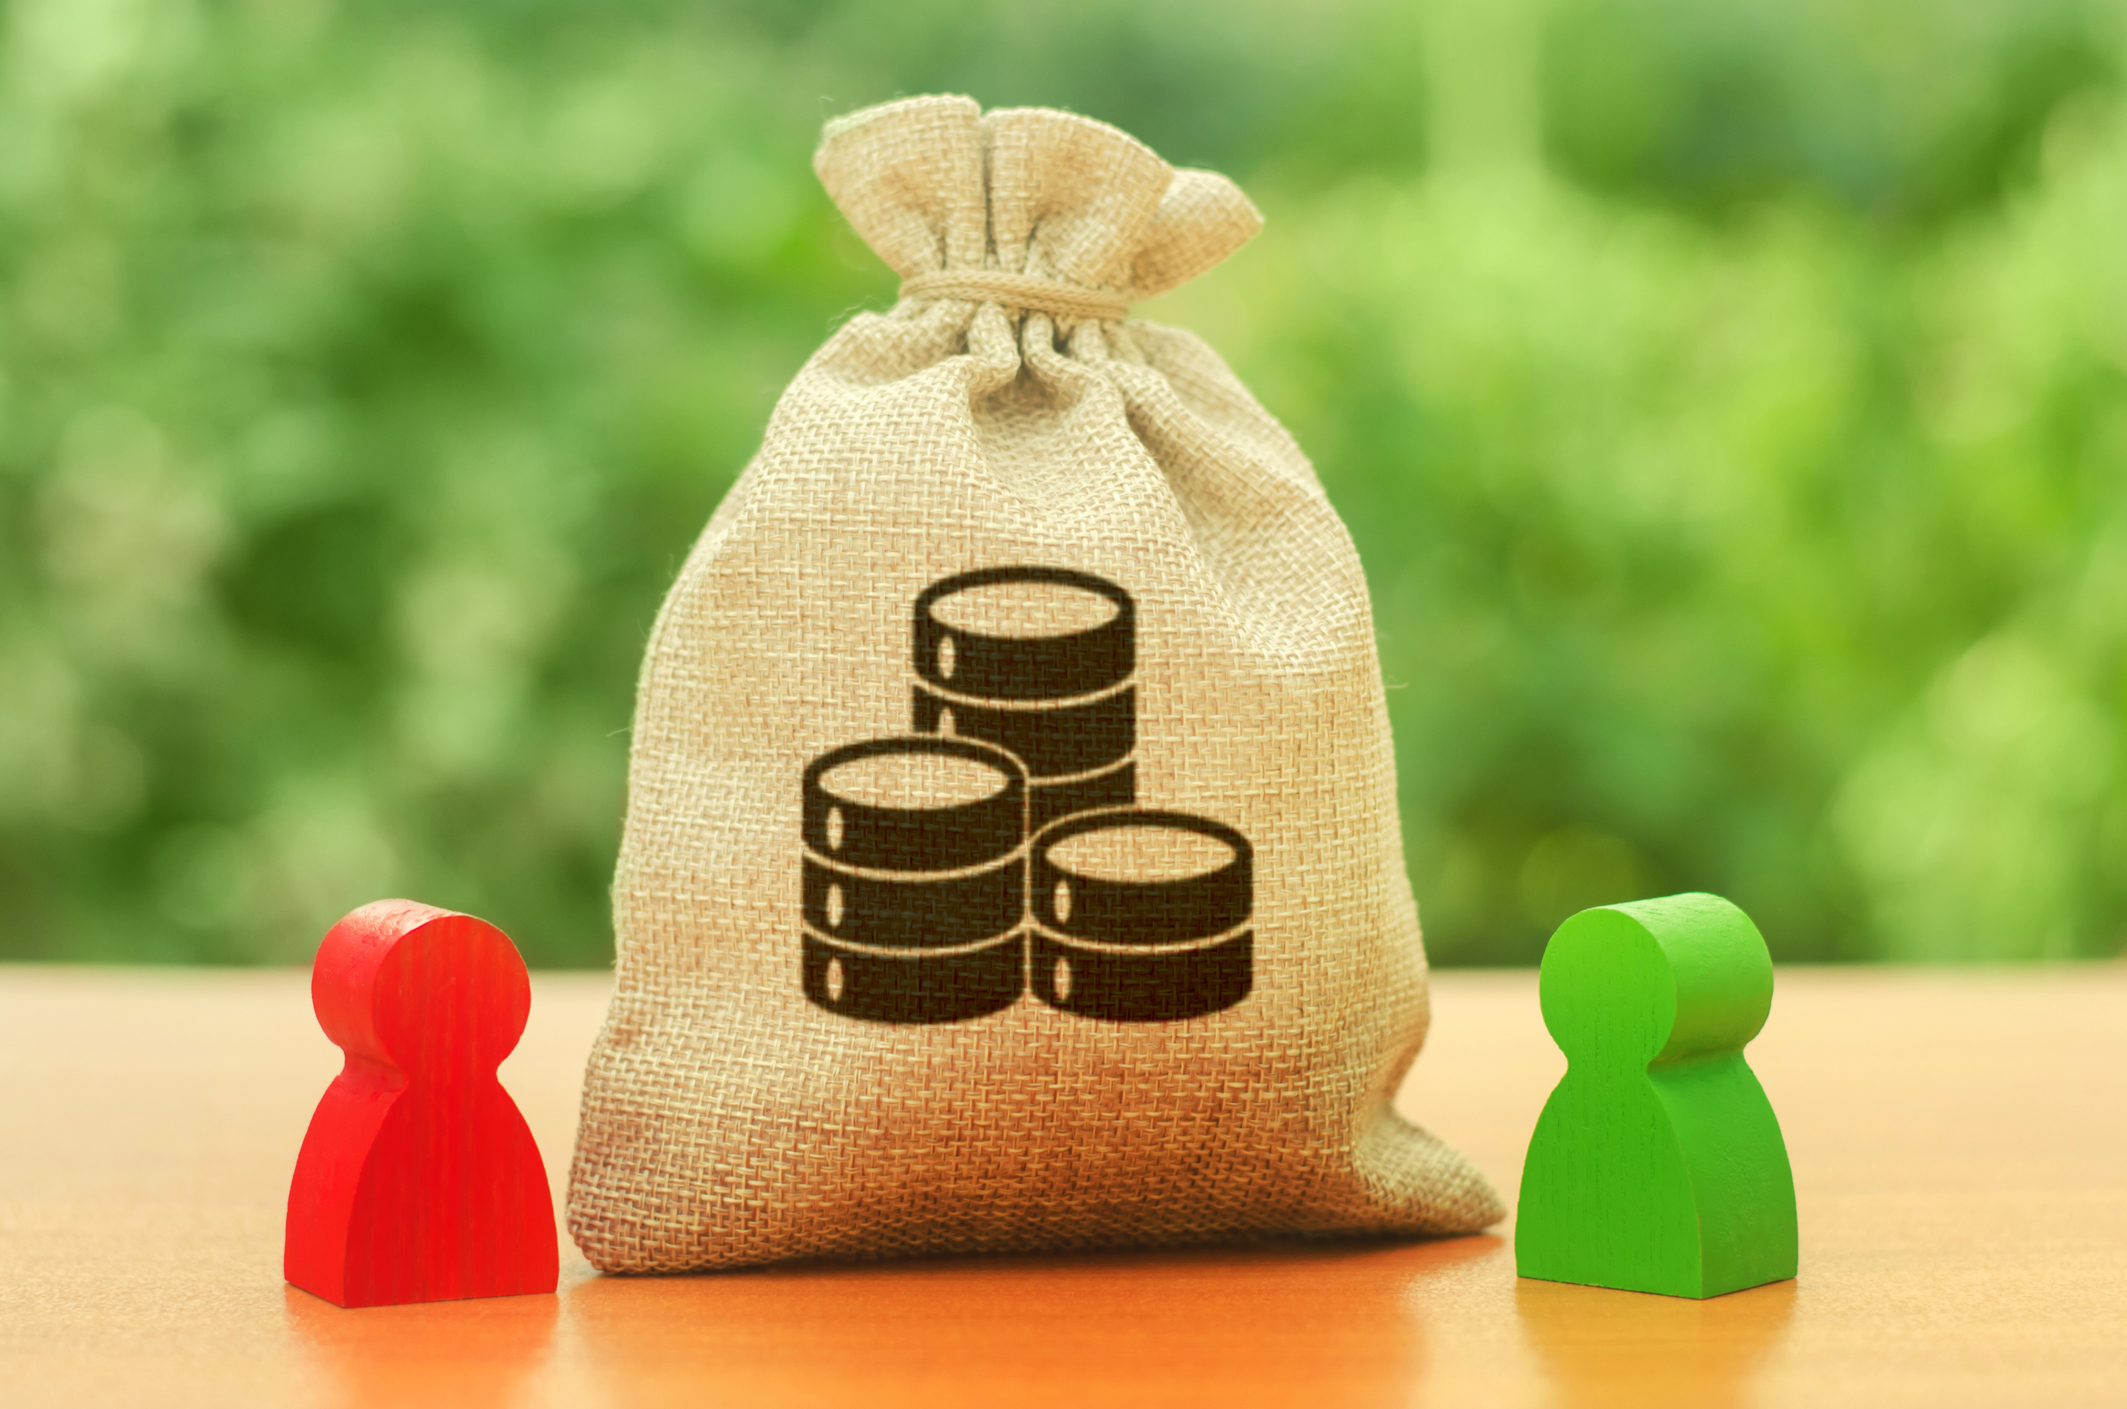 Money bag with money coins symbol and two people figures. Division of resources